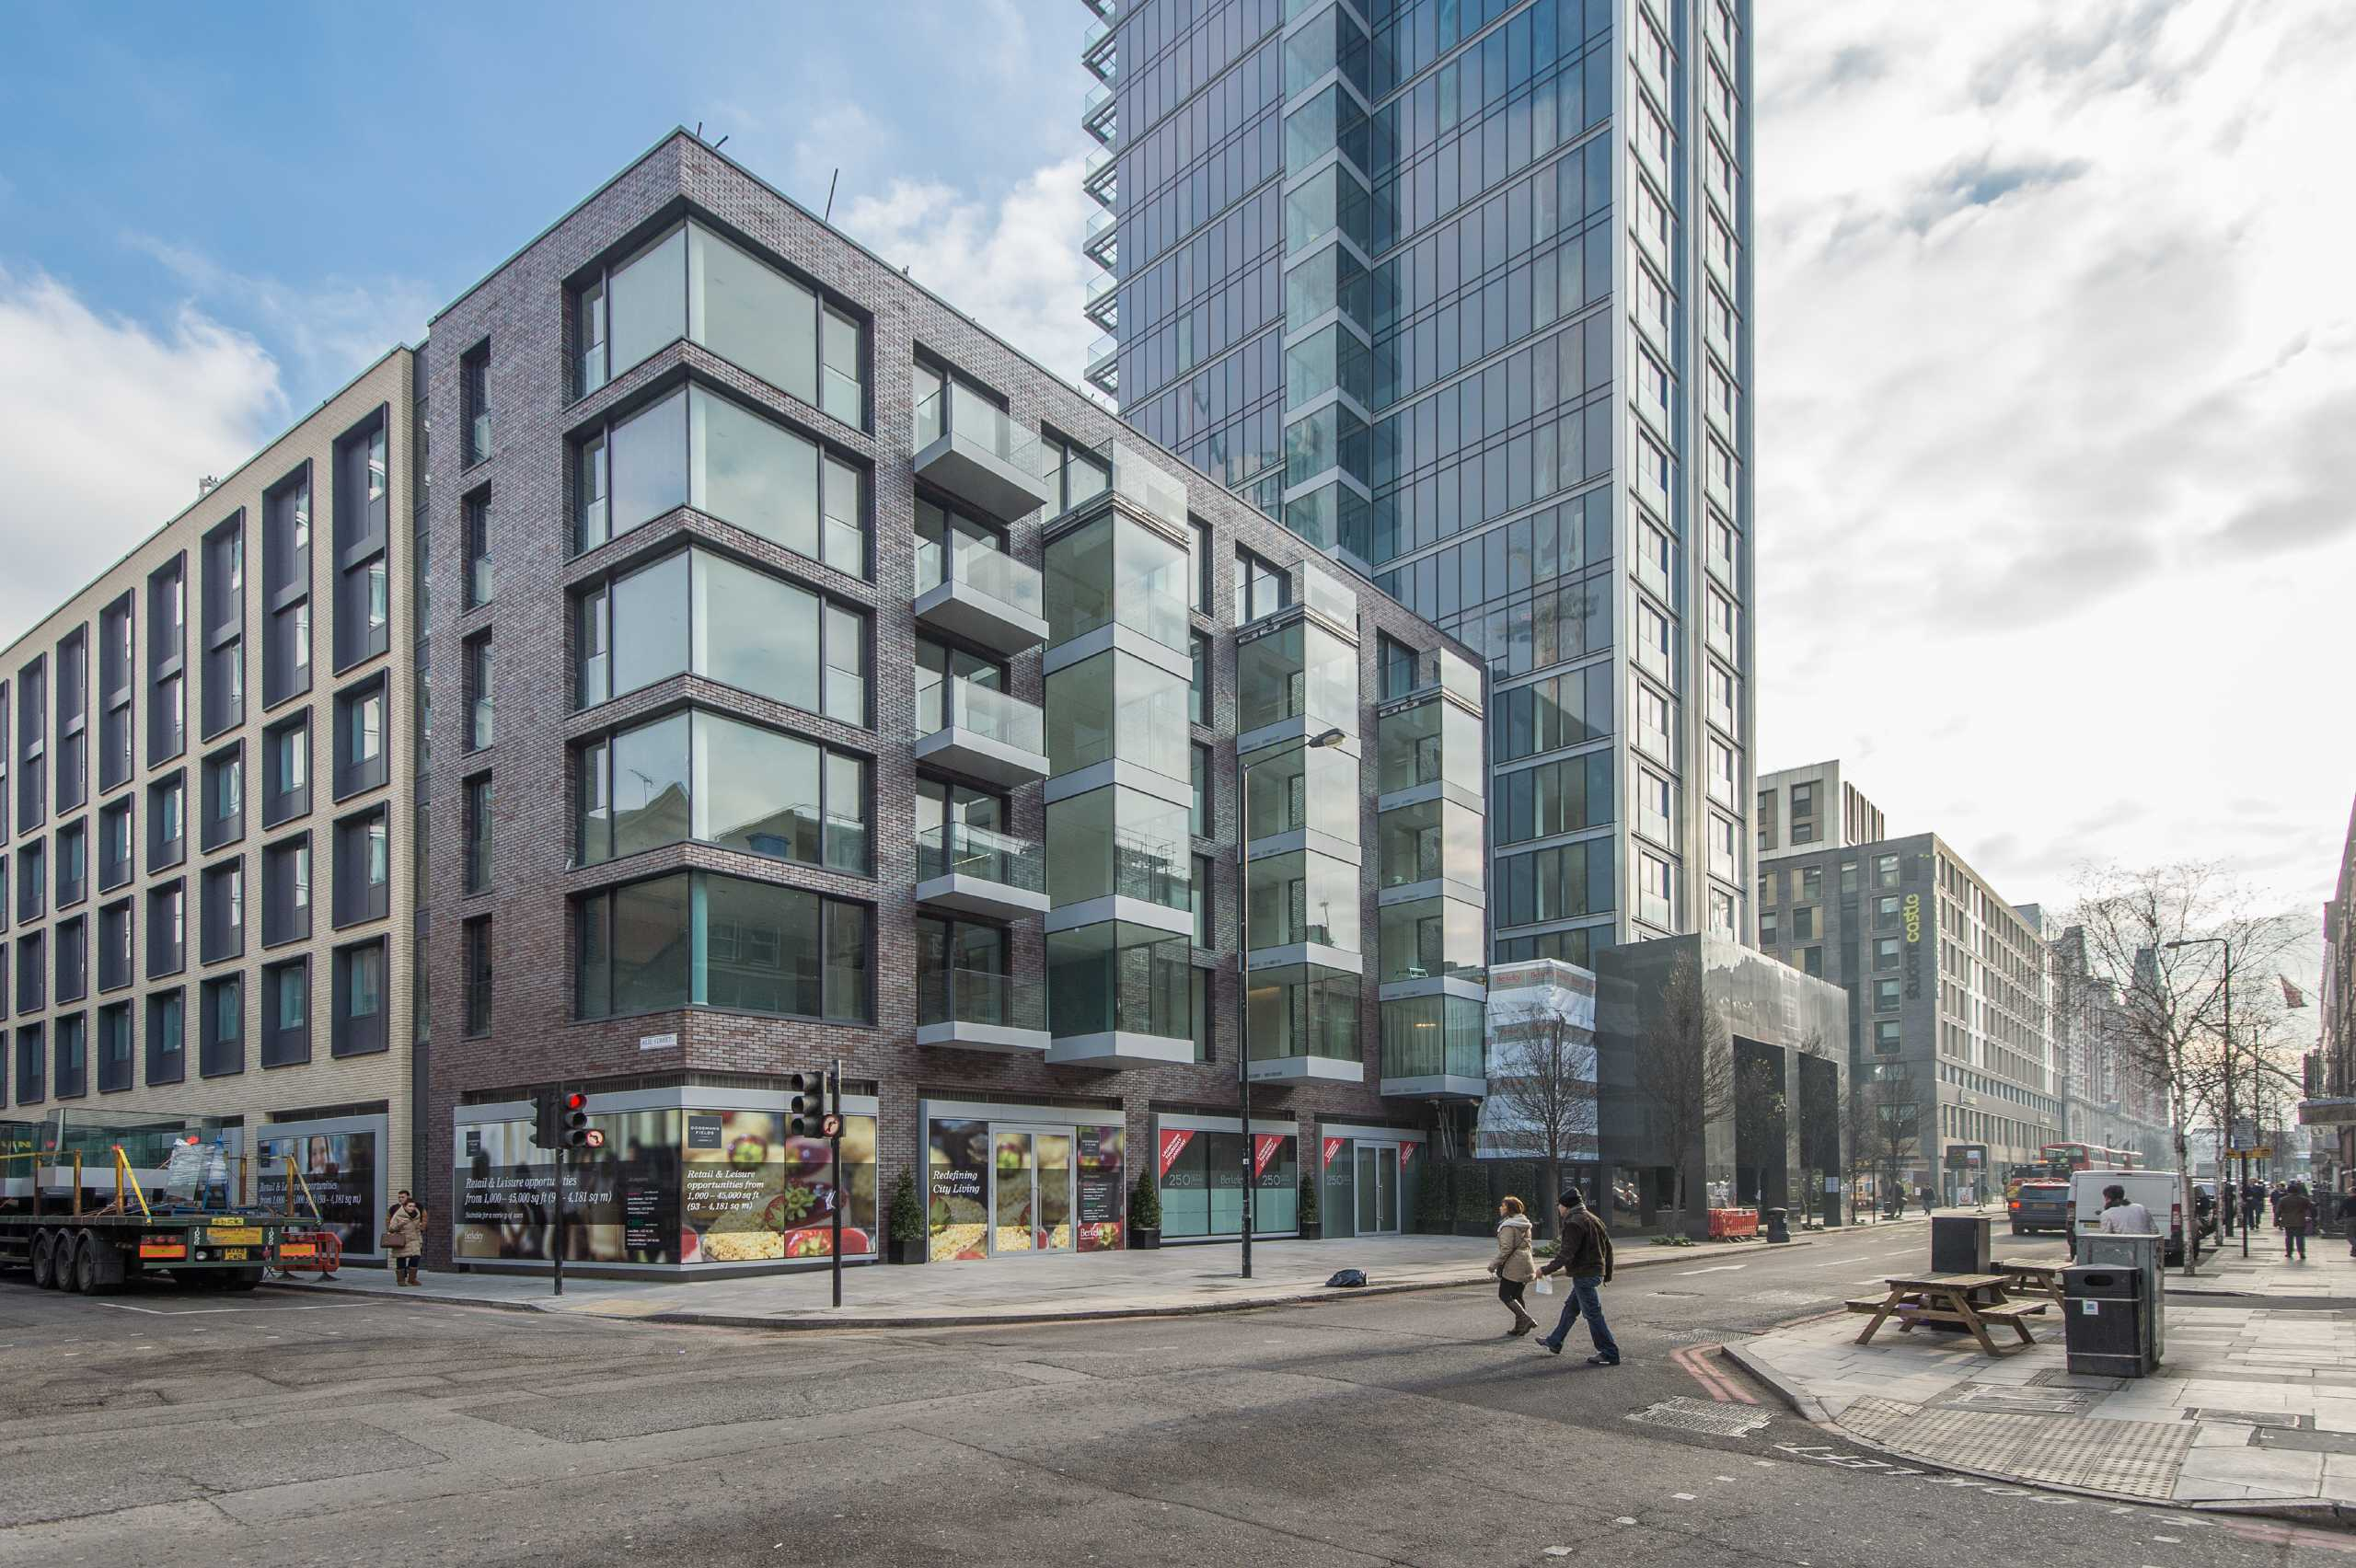 2 Bedrooms Apartment Flat for sale in Kingwood Gardens, Goodmans Field, Leman Street, Aldgate, E1